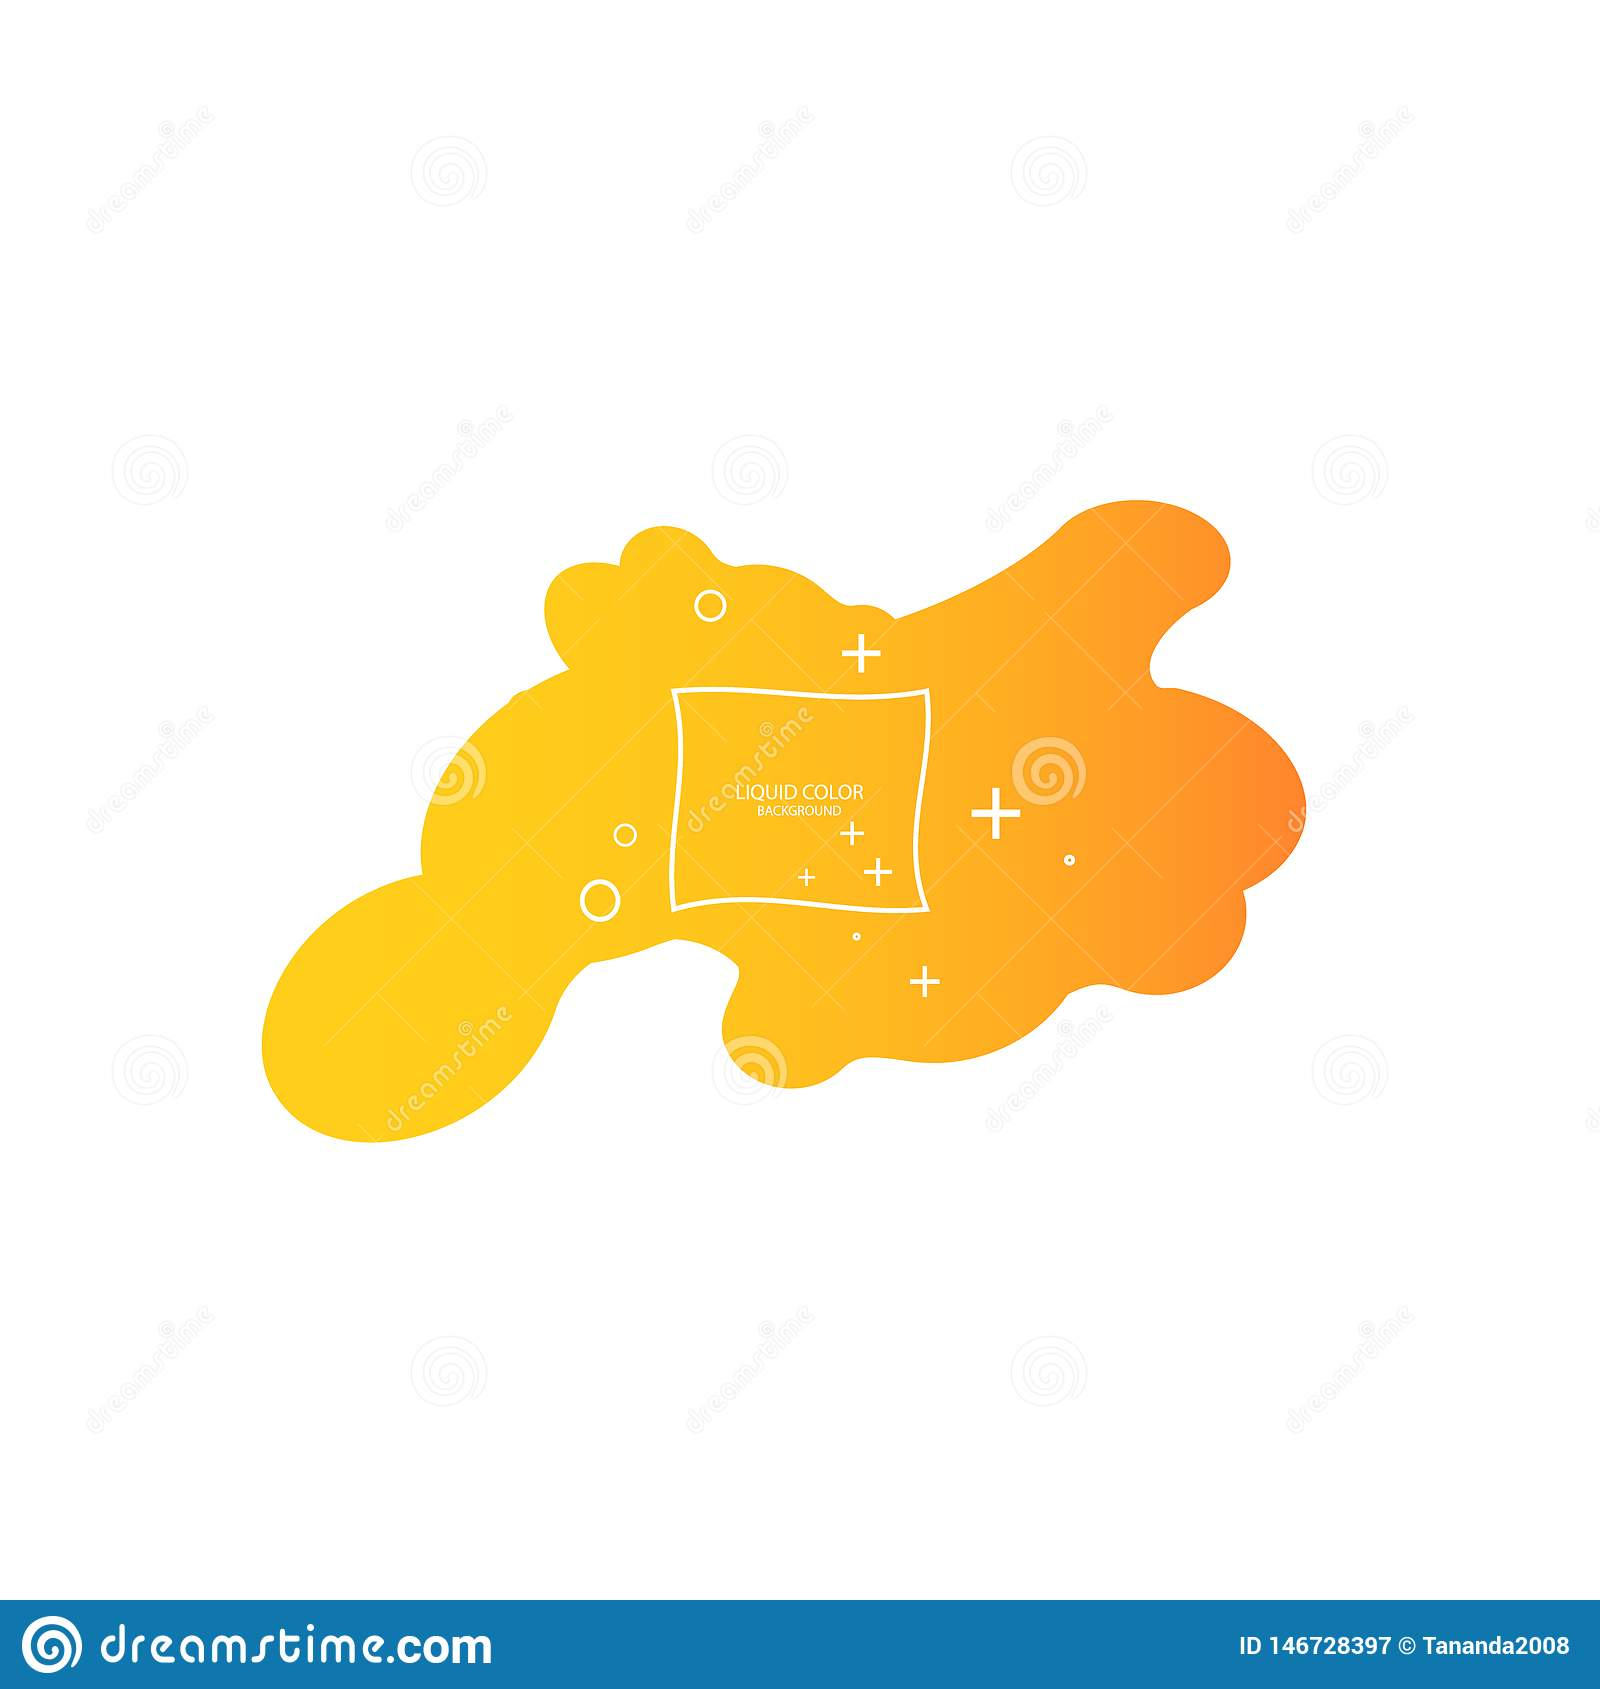 Abstract form of fluid. Liquid design. Liquid dynamic background for web sites, landing page or business presentation